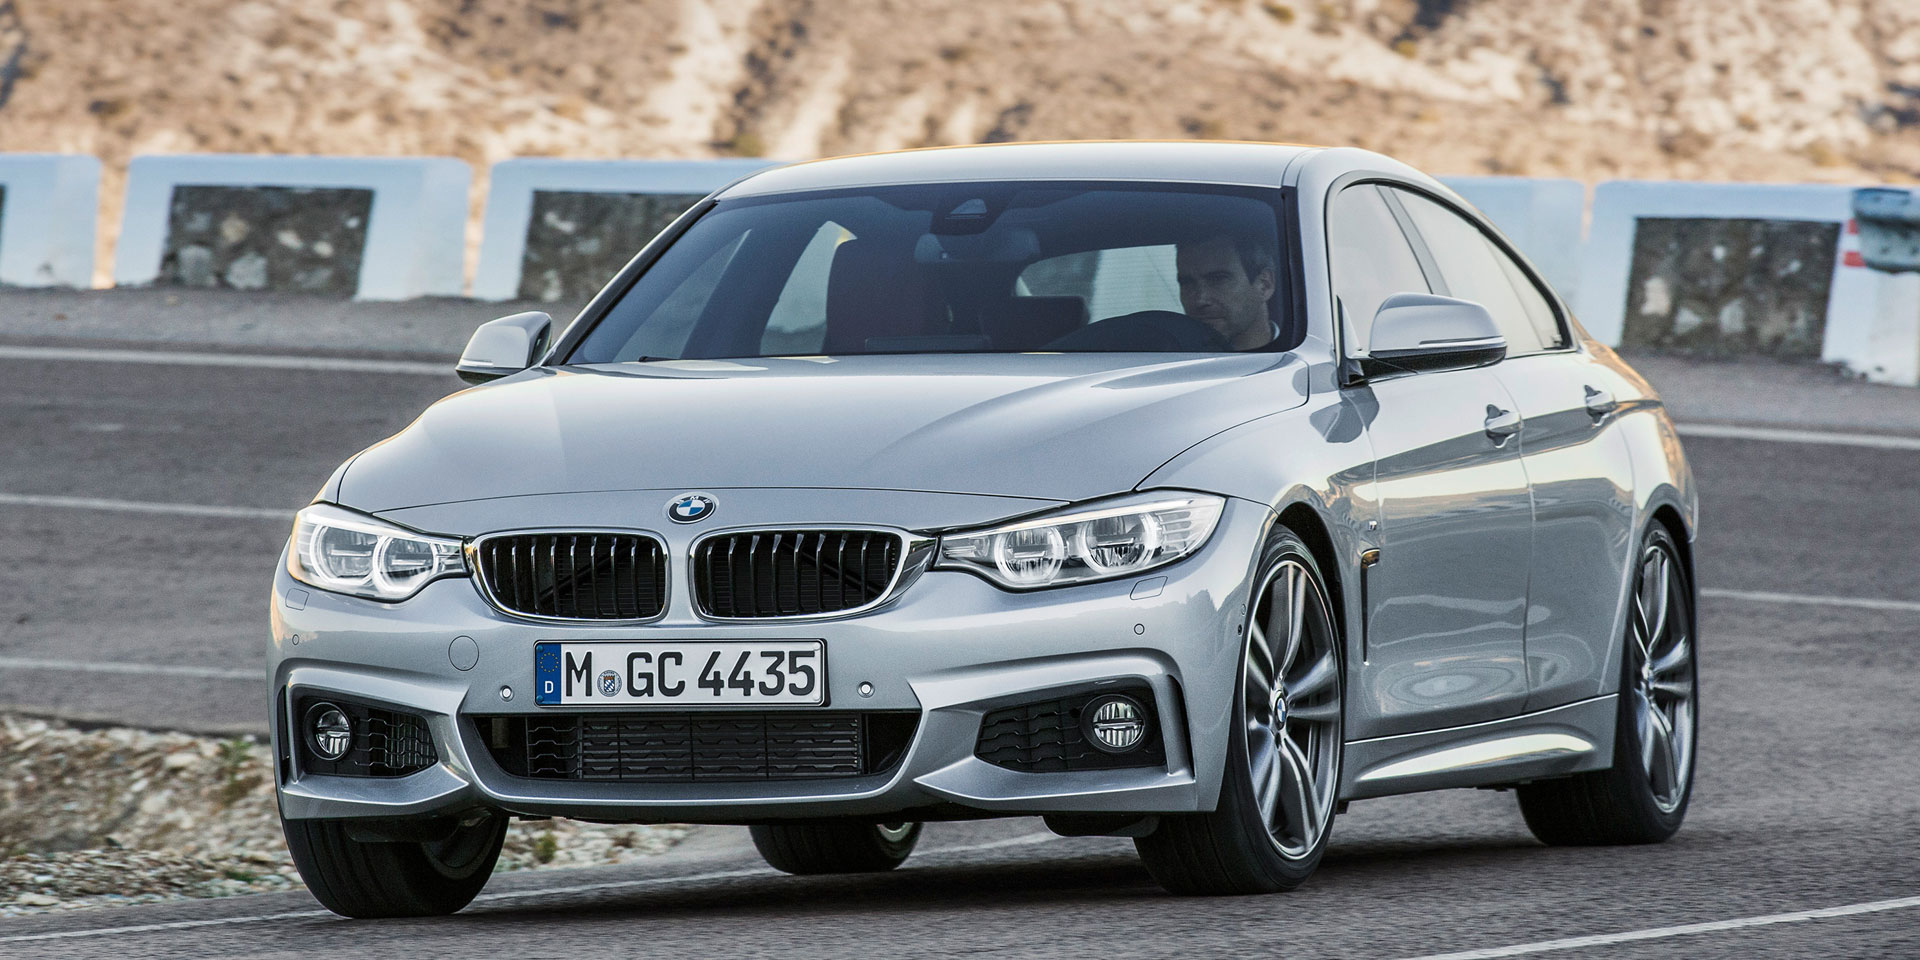 Coupe Series bmw two door Used Cars For Sale, New Cars For Sale, Car Dealers, Cars Chicago ...